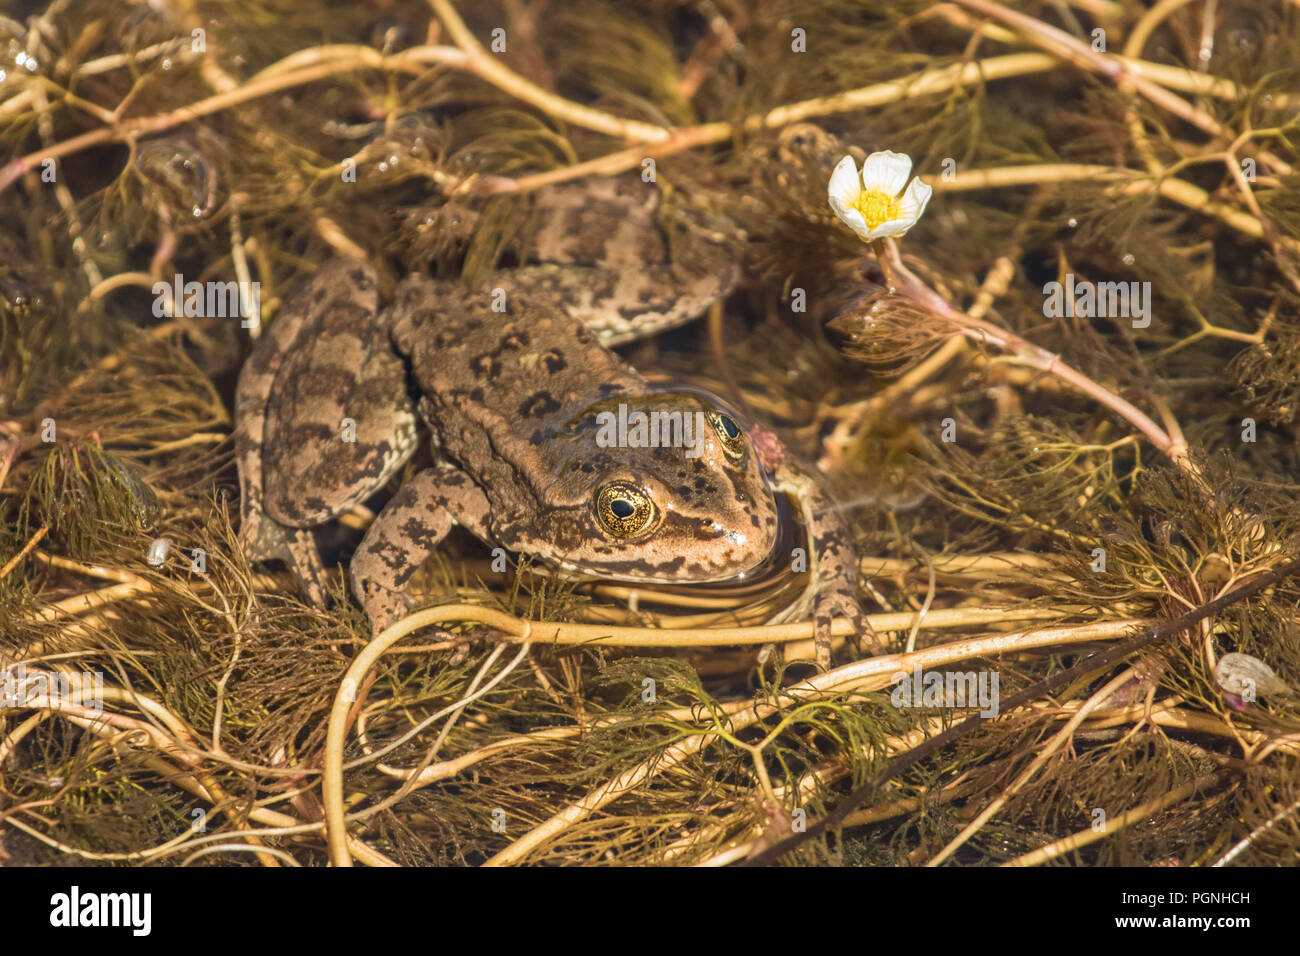 Spotted Frog Waiting for Lunch Stock Photo